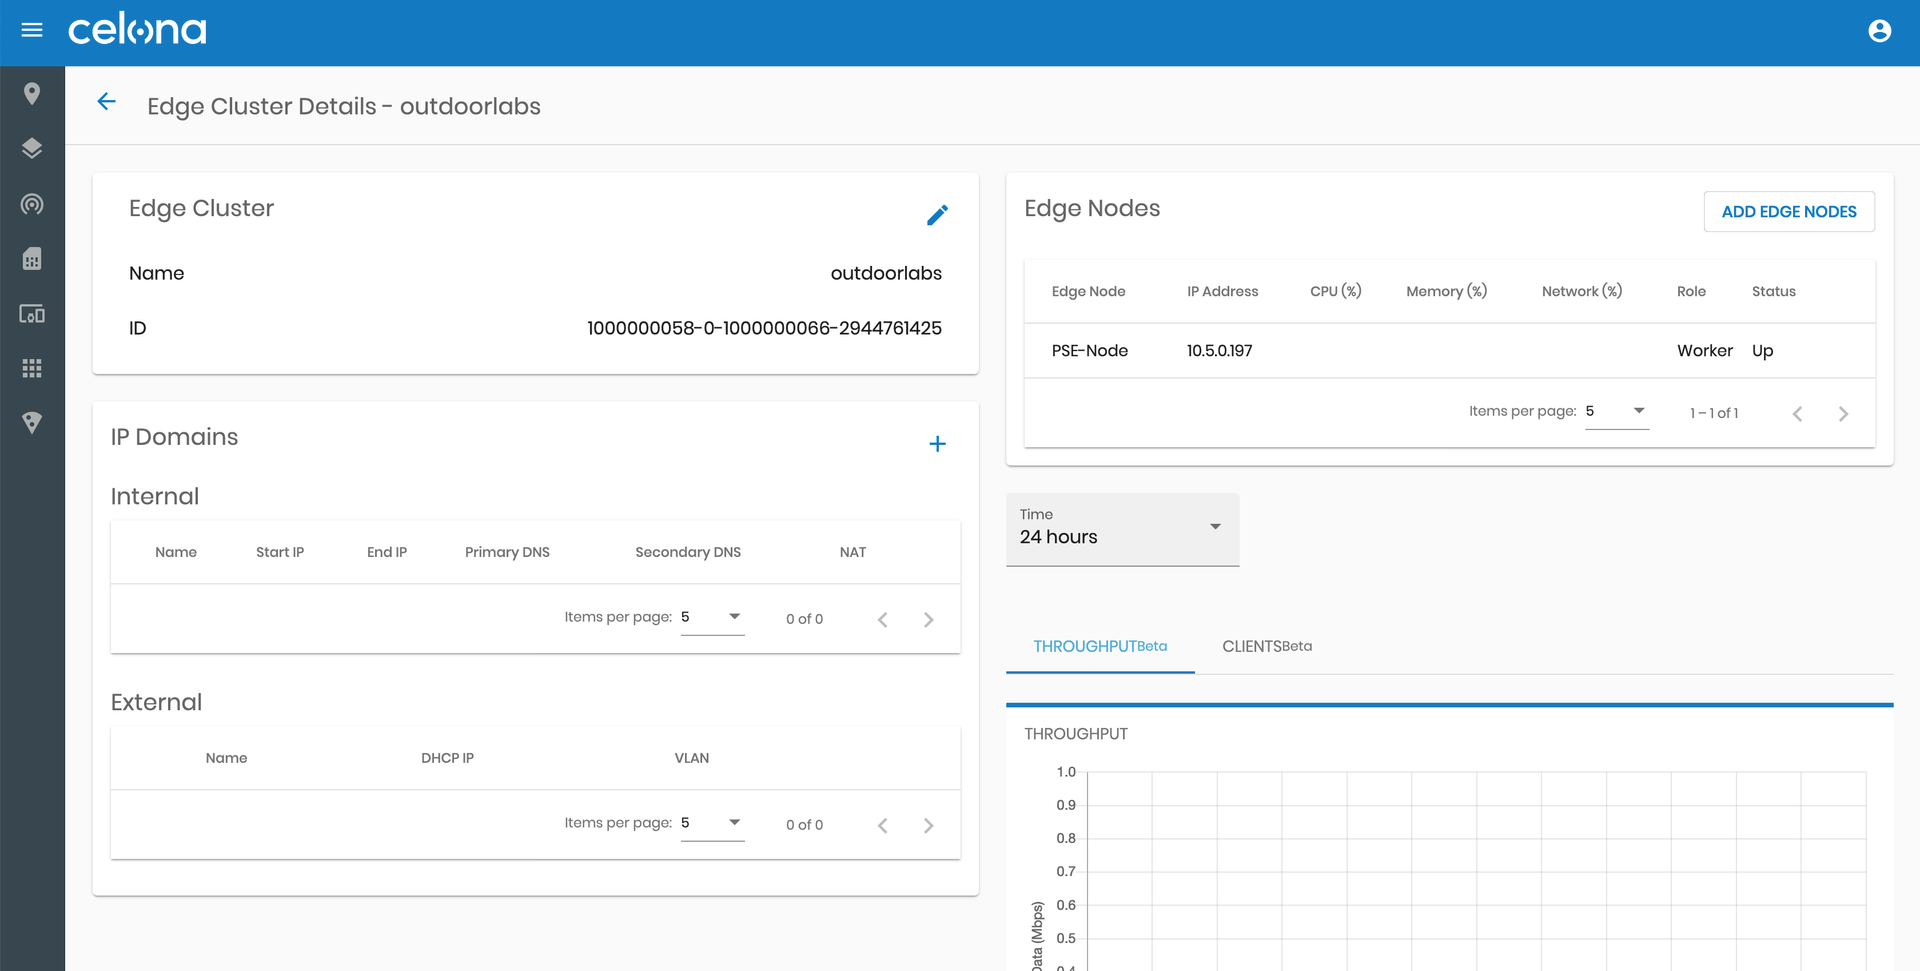 Configuring Edge Clusters via the Celona Orchestrator